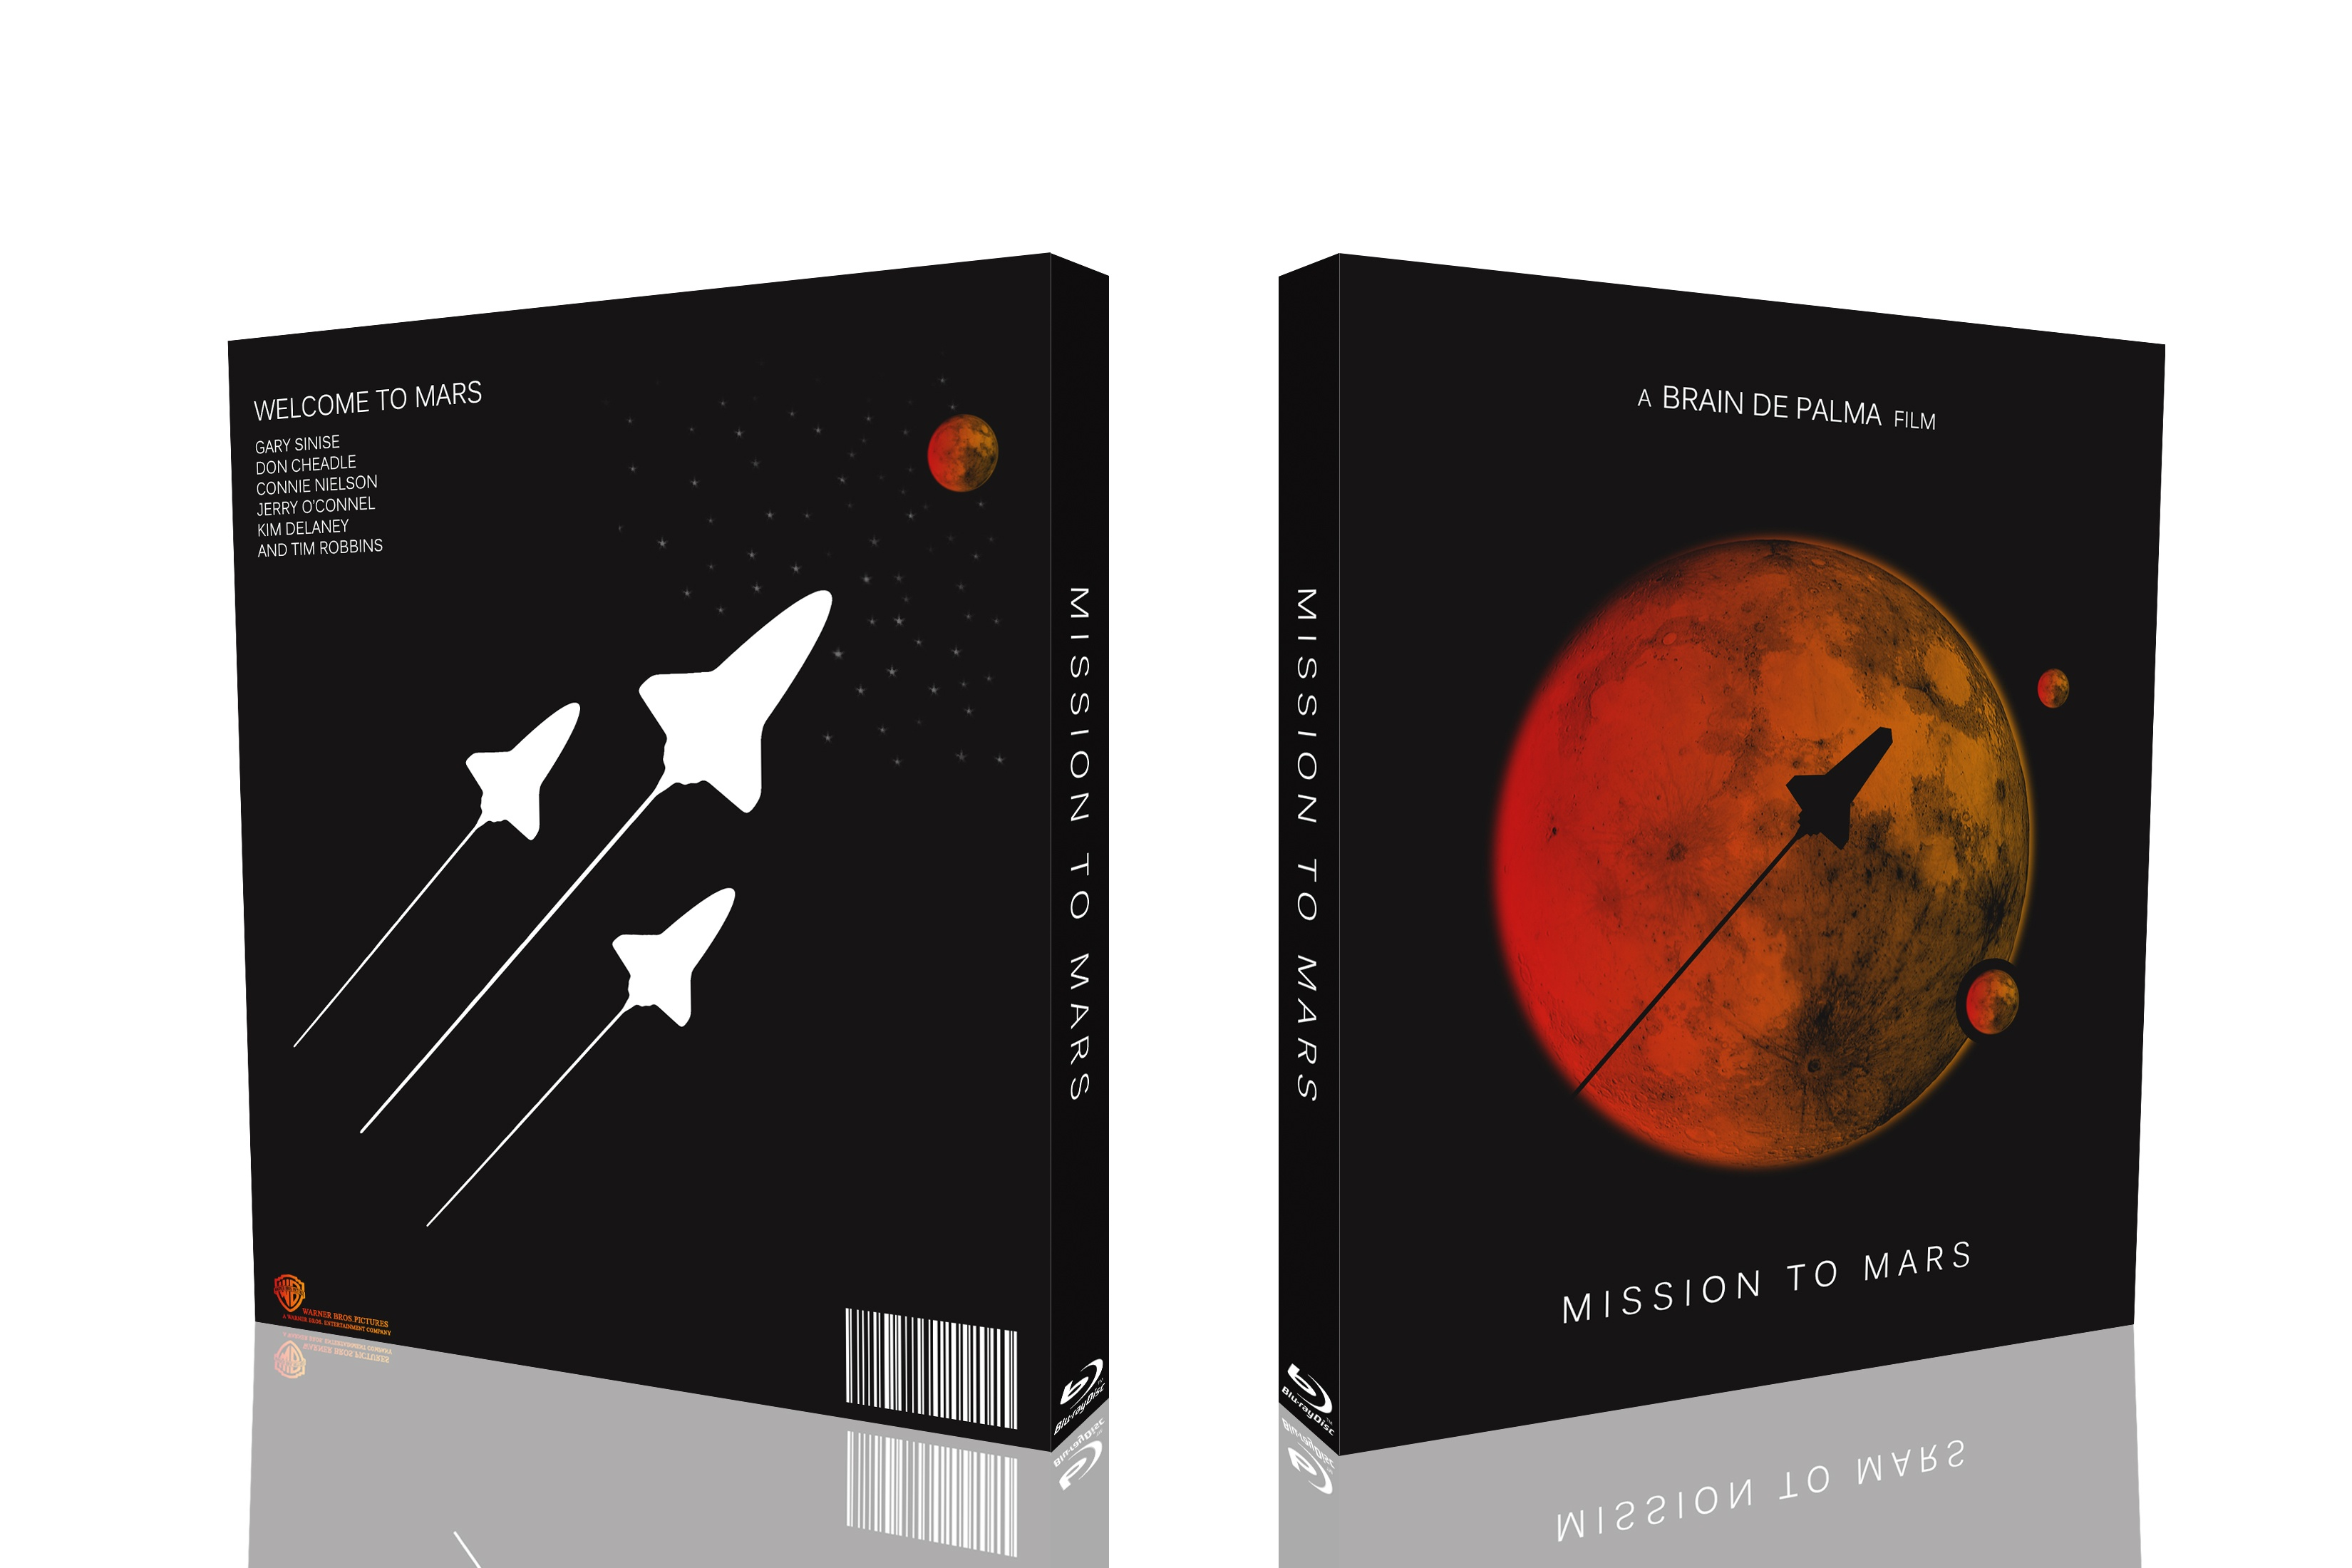 Mission To Mars box cover